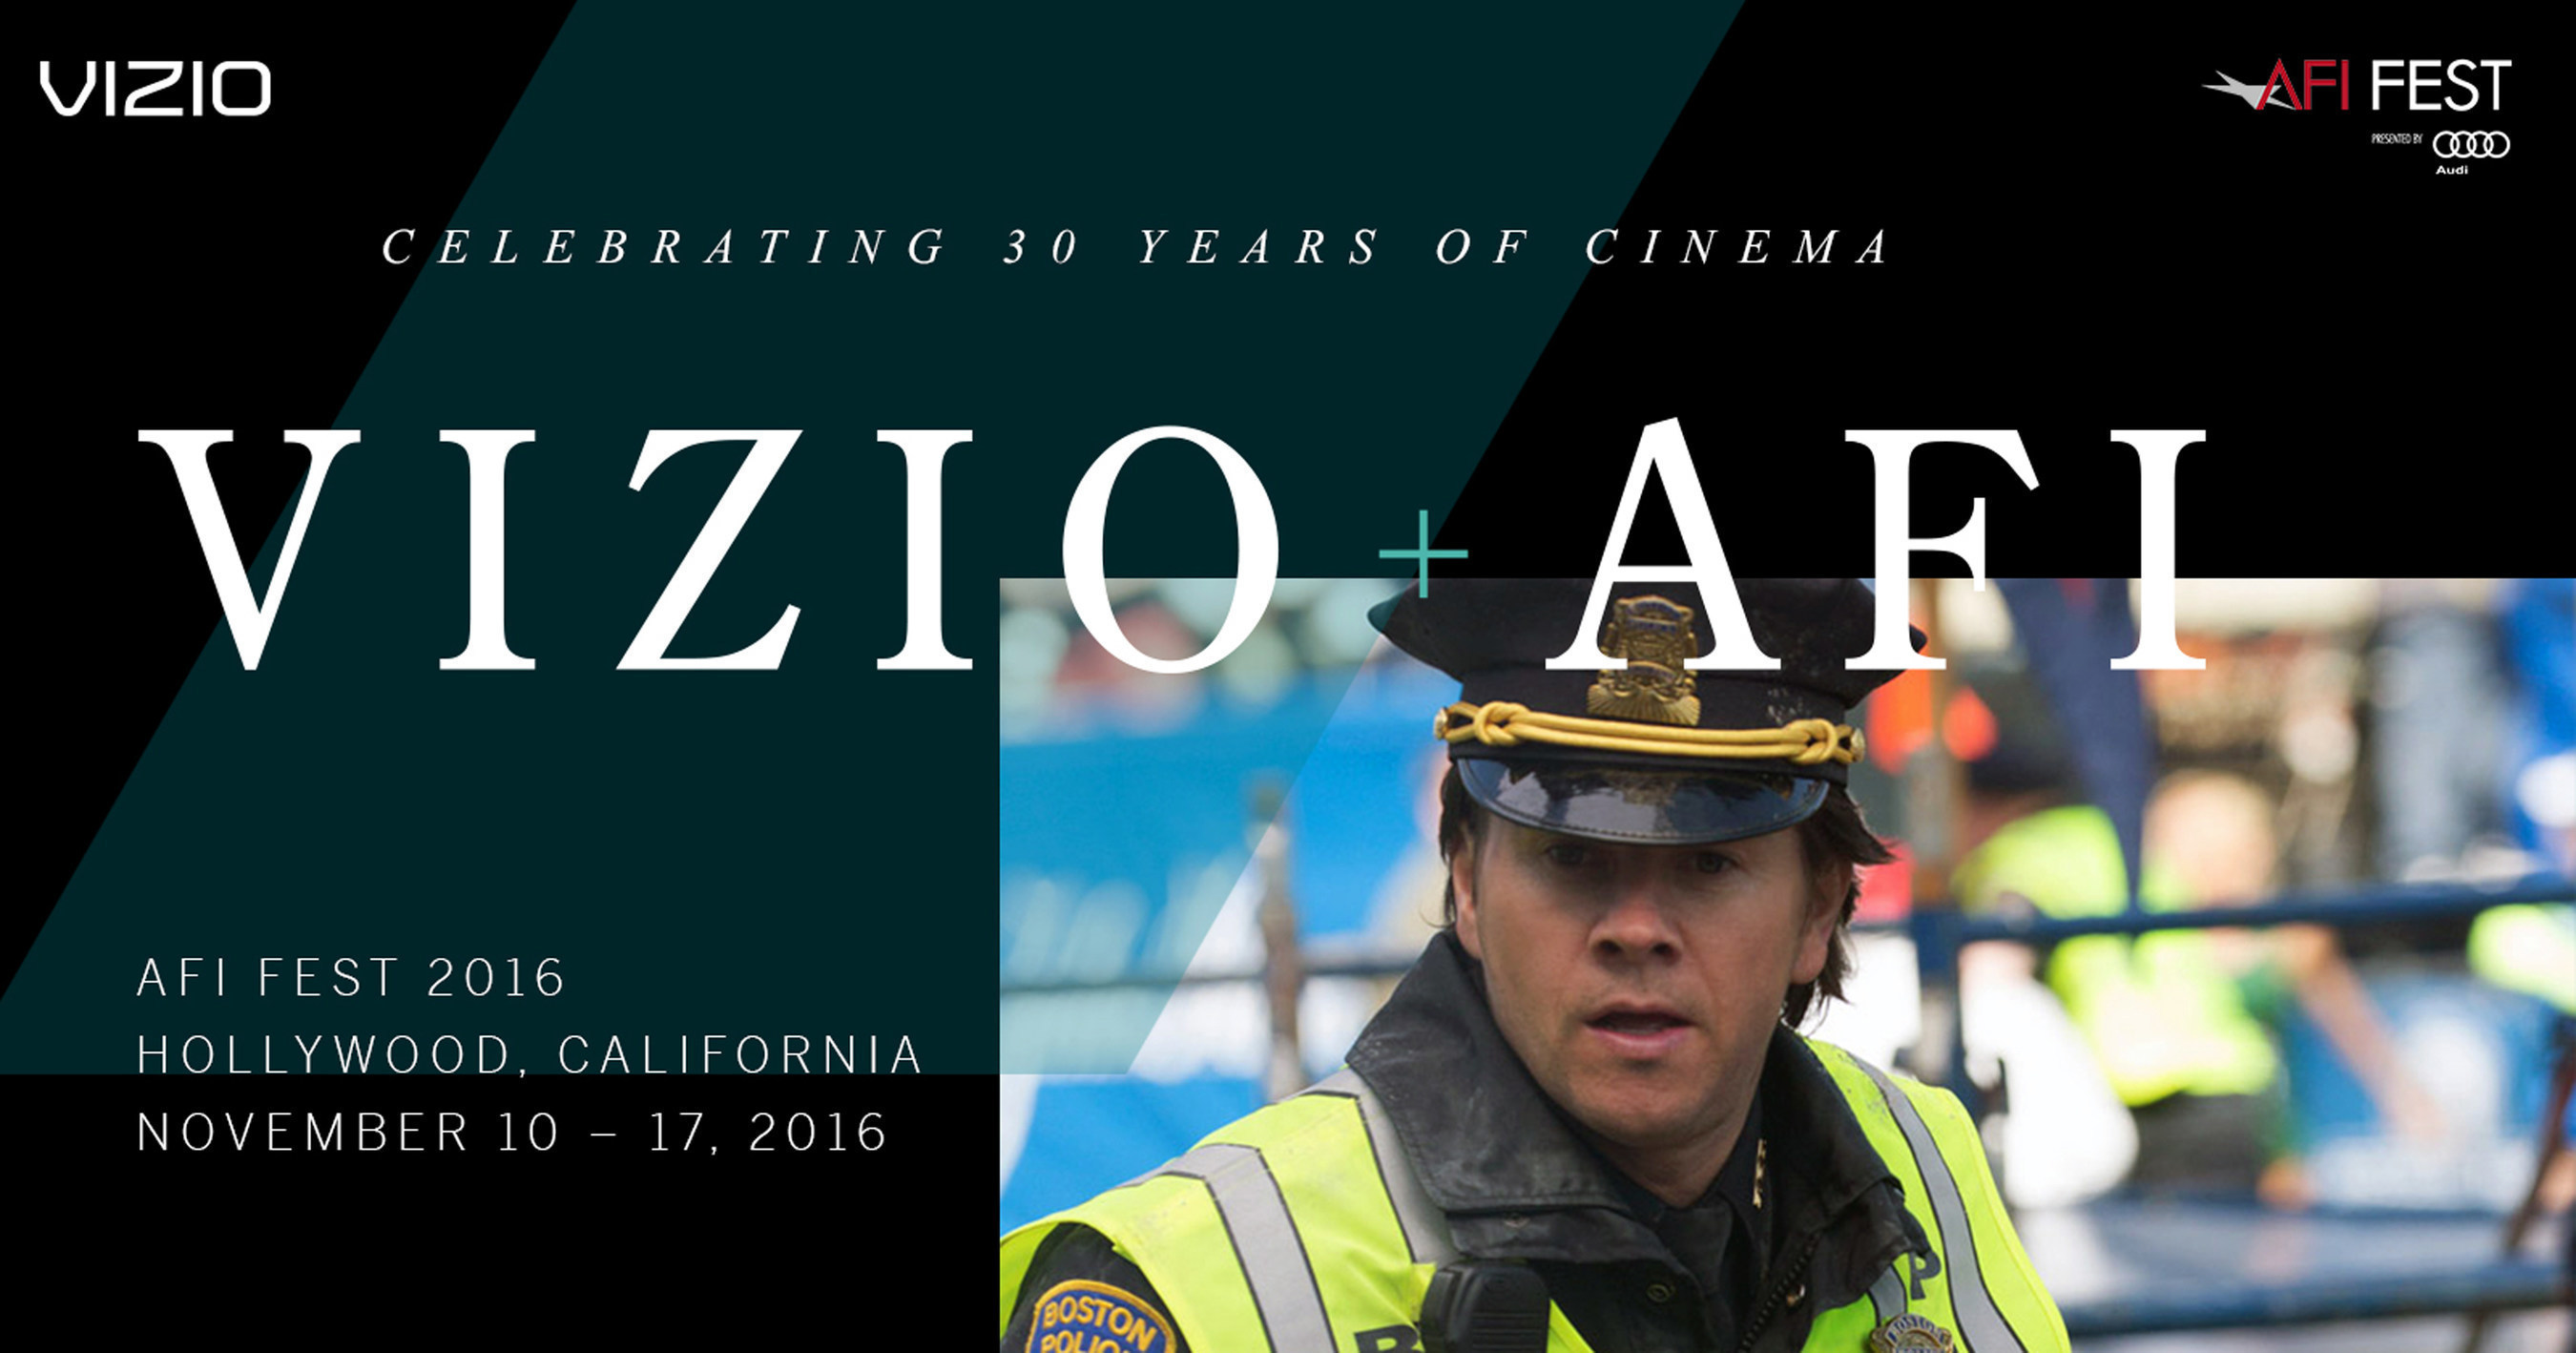 VIZIO and the American Film Institute Collaborate to Showcase the Intersection of Art and Technology at AFI FEST 2016